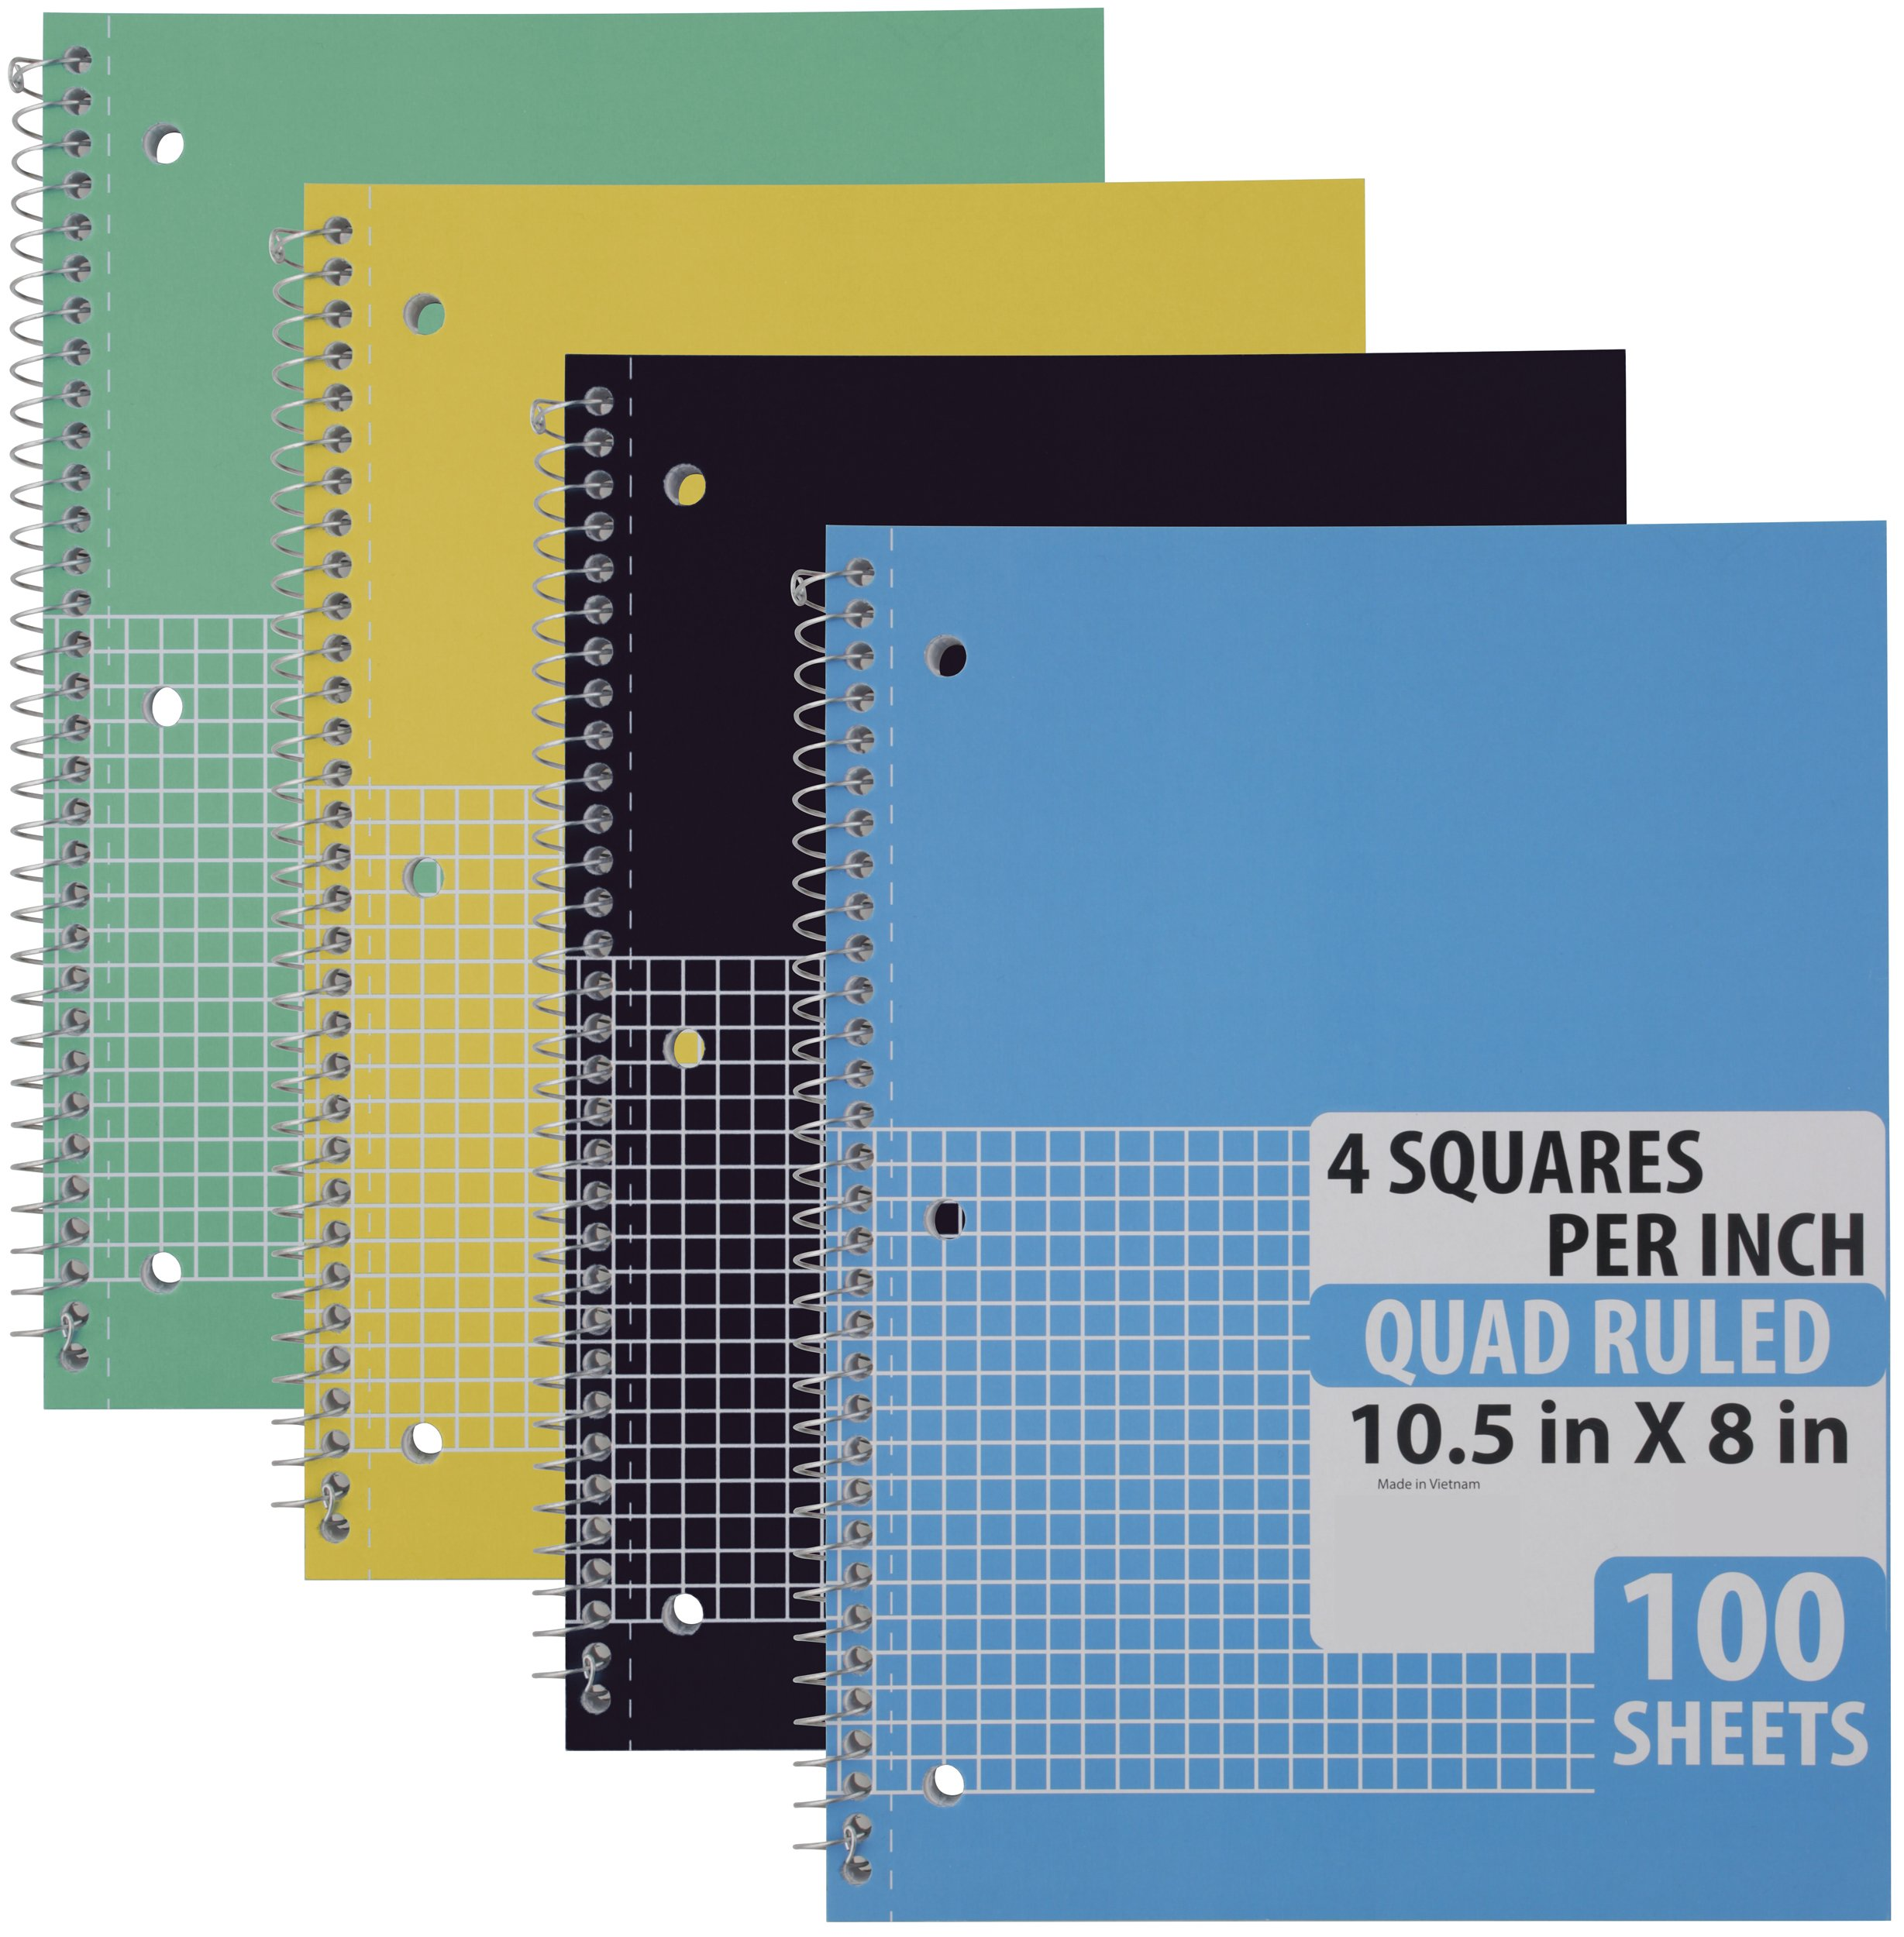 Emraw Quad Ruled Notebook Spiral with 100 Sheets White Paper - Set Includes: Blue, Black, Yellow, Green Covers (4 Pack) by Emraw